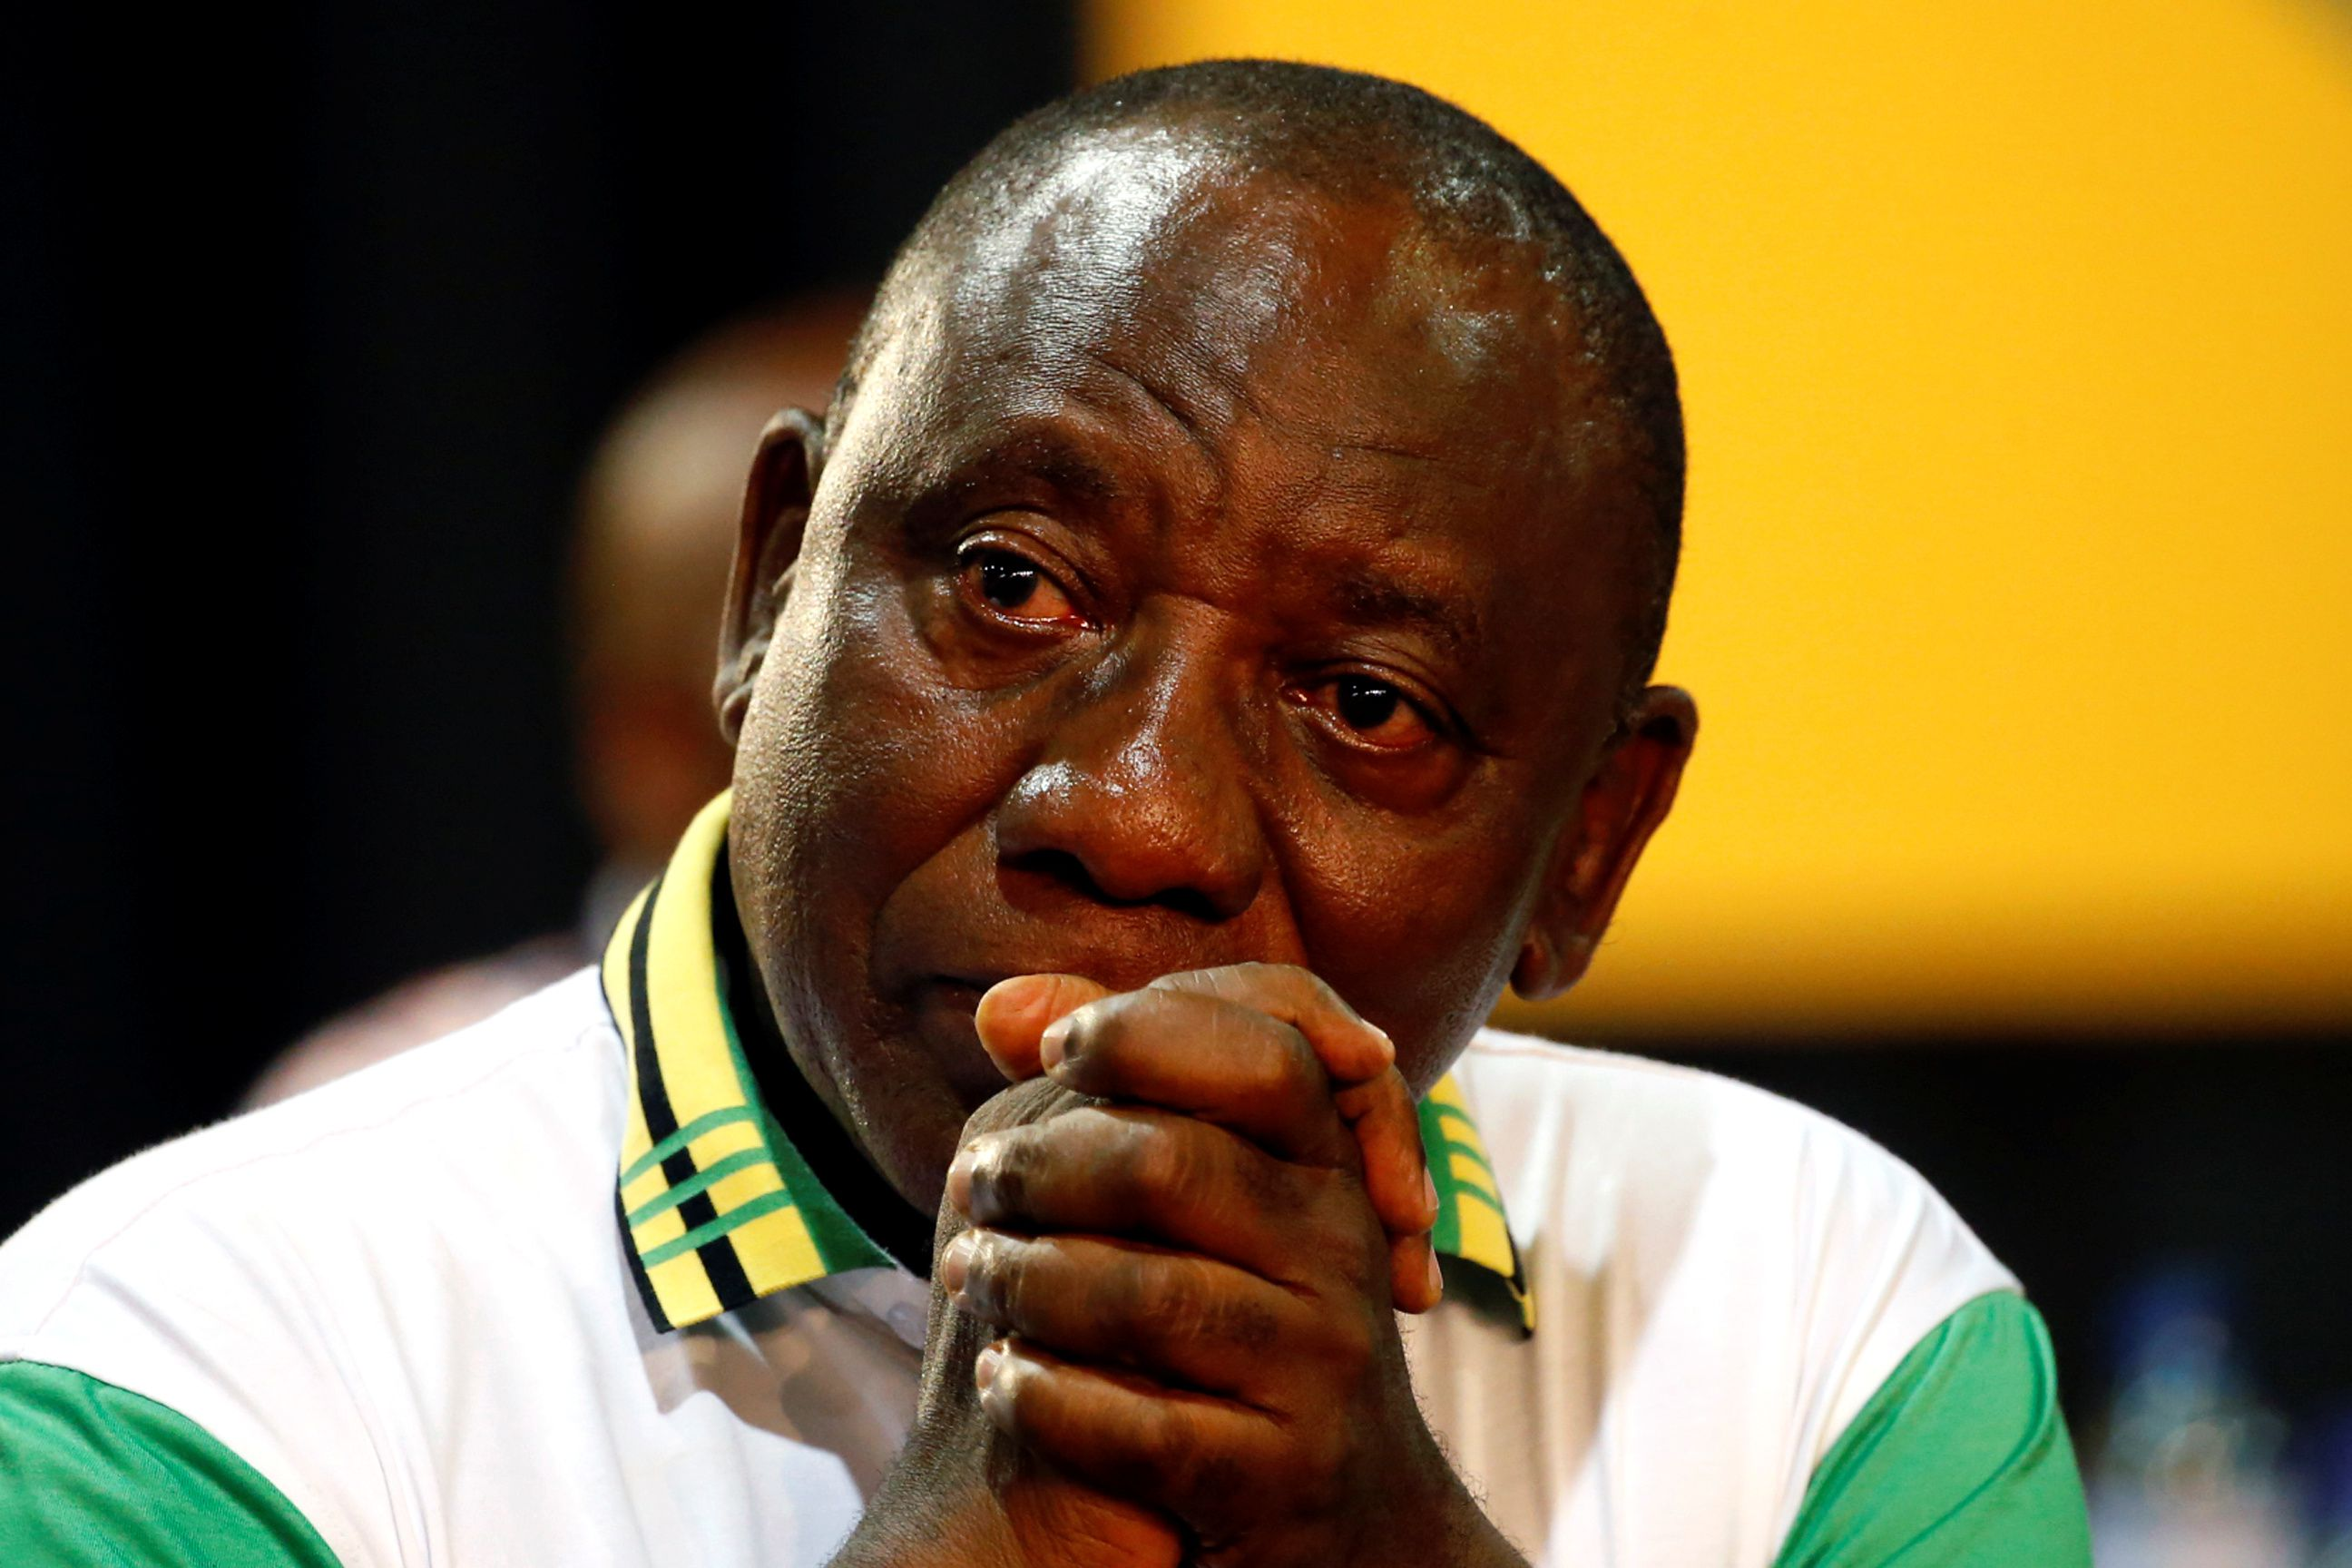 South Africa's Ramaphosa: ANC Working to Resolve Fate of Zuma